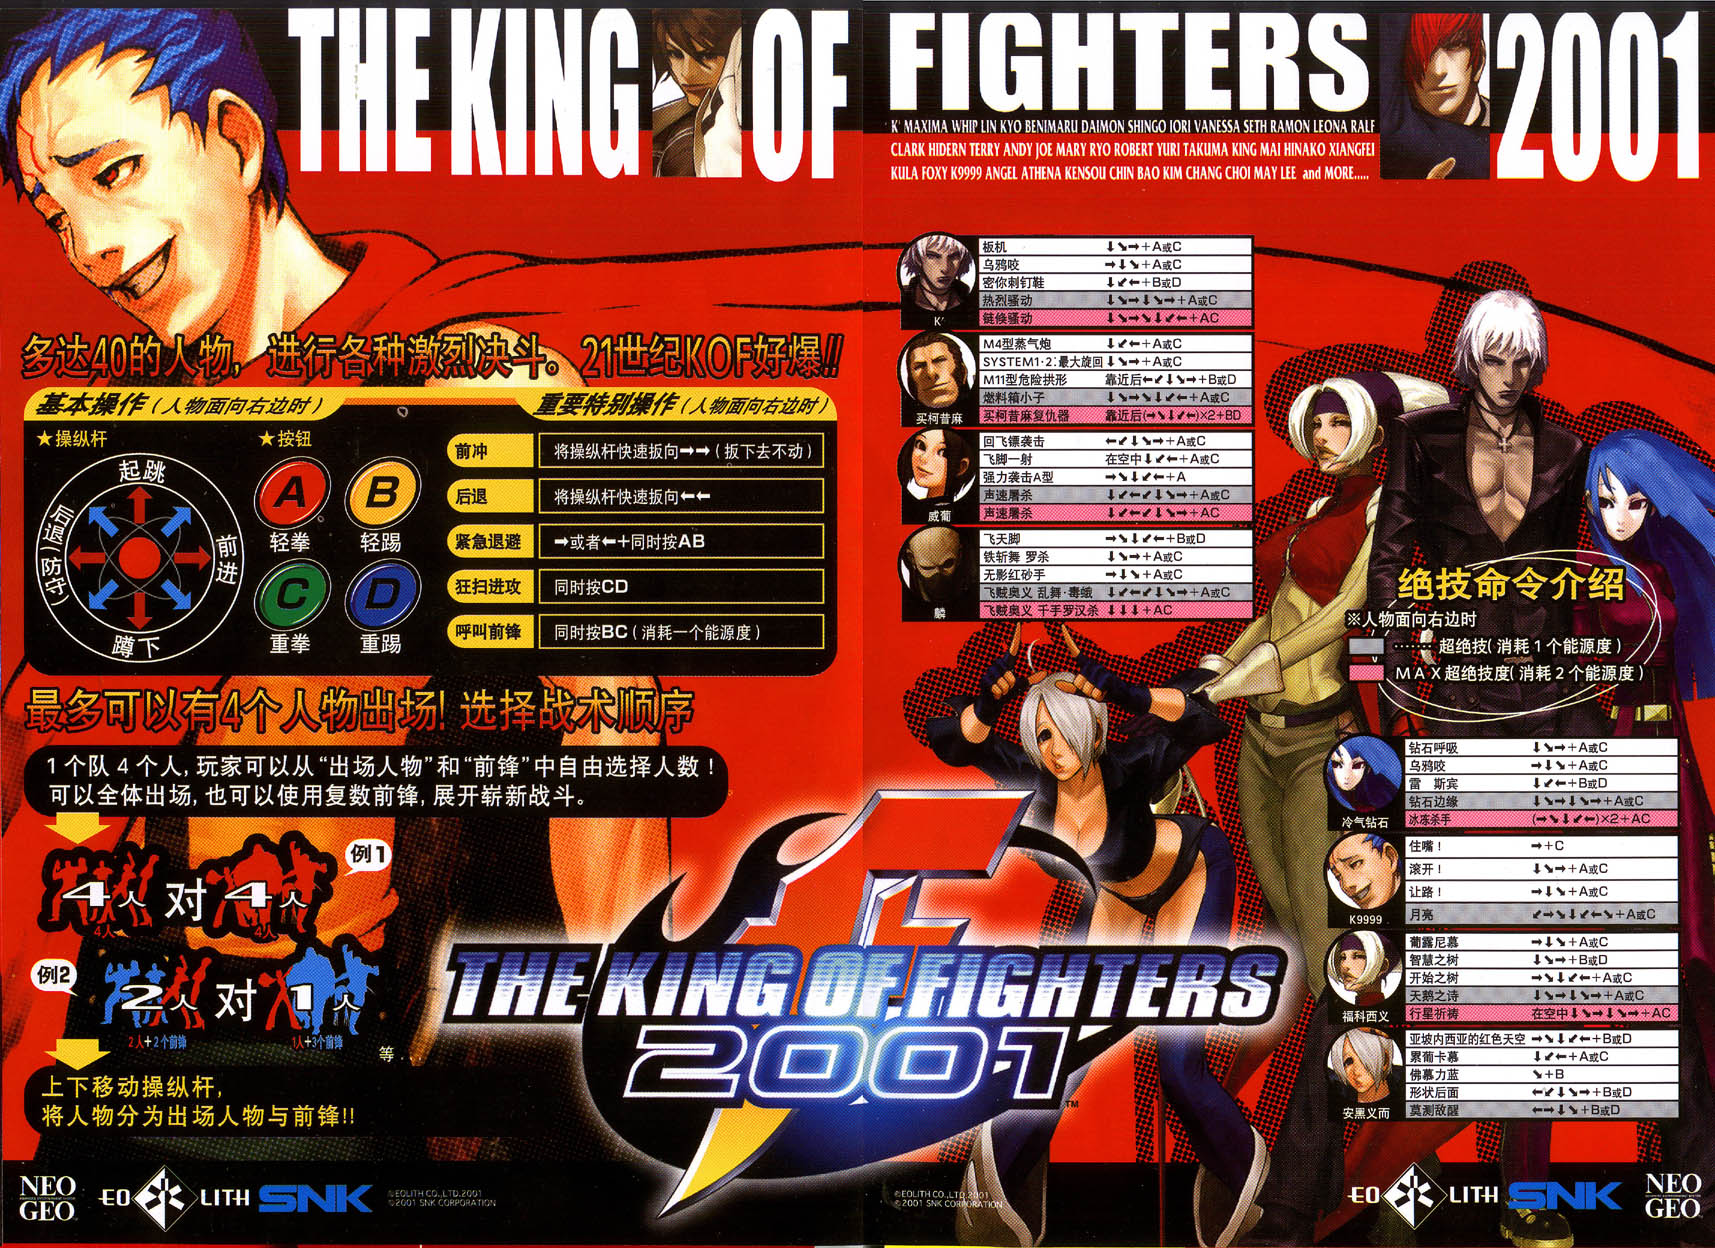 The King Of Fighters 2001 Tfg Review Art Gallery